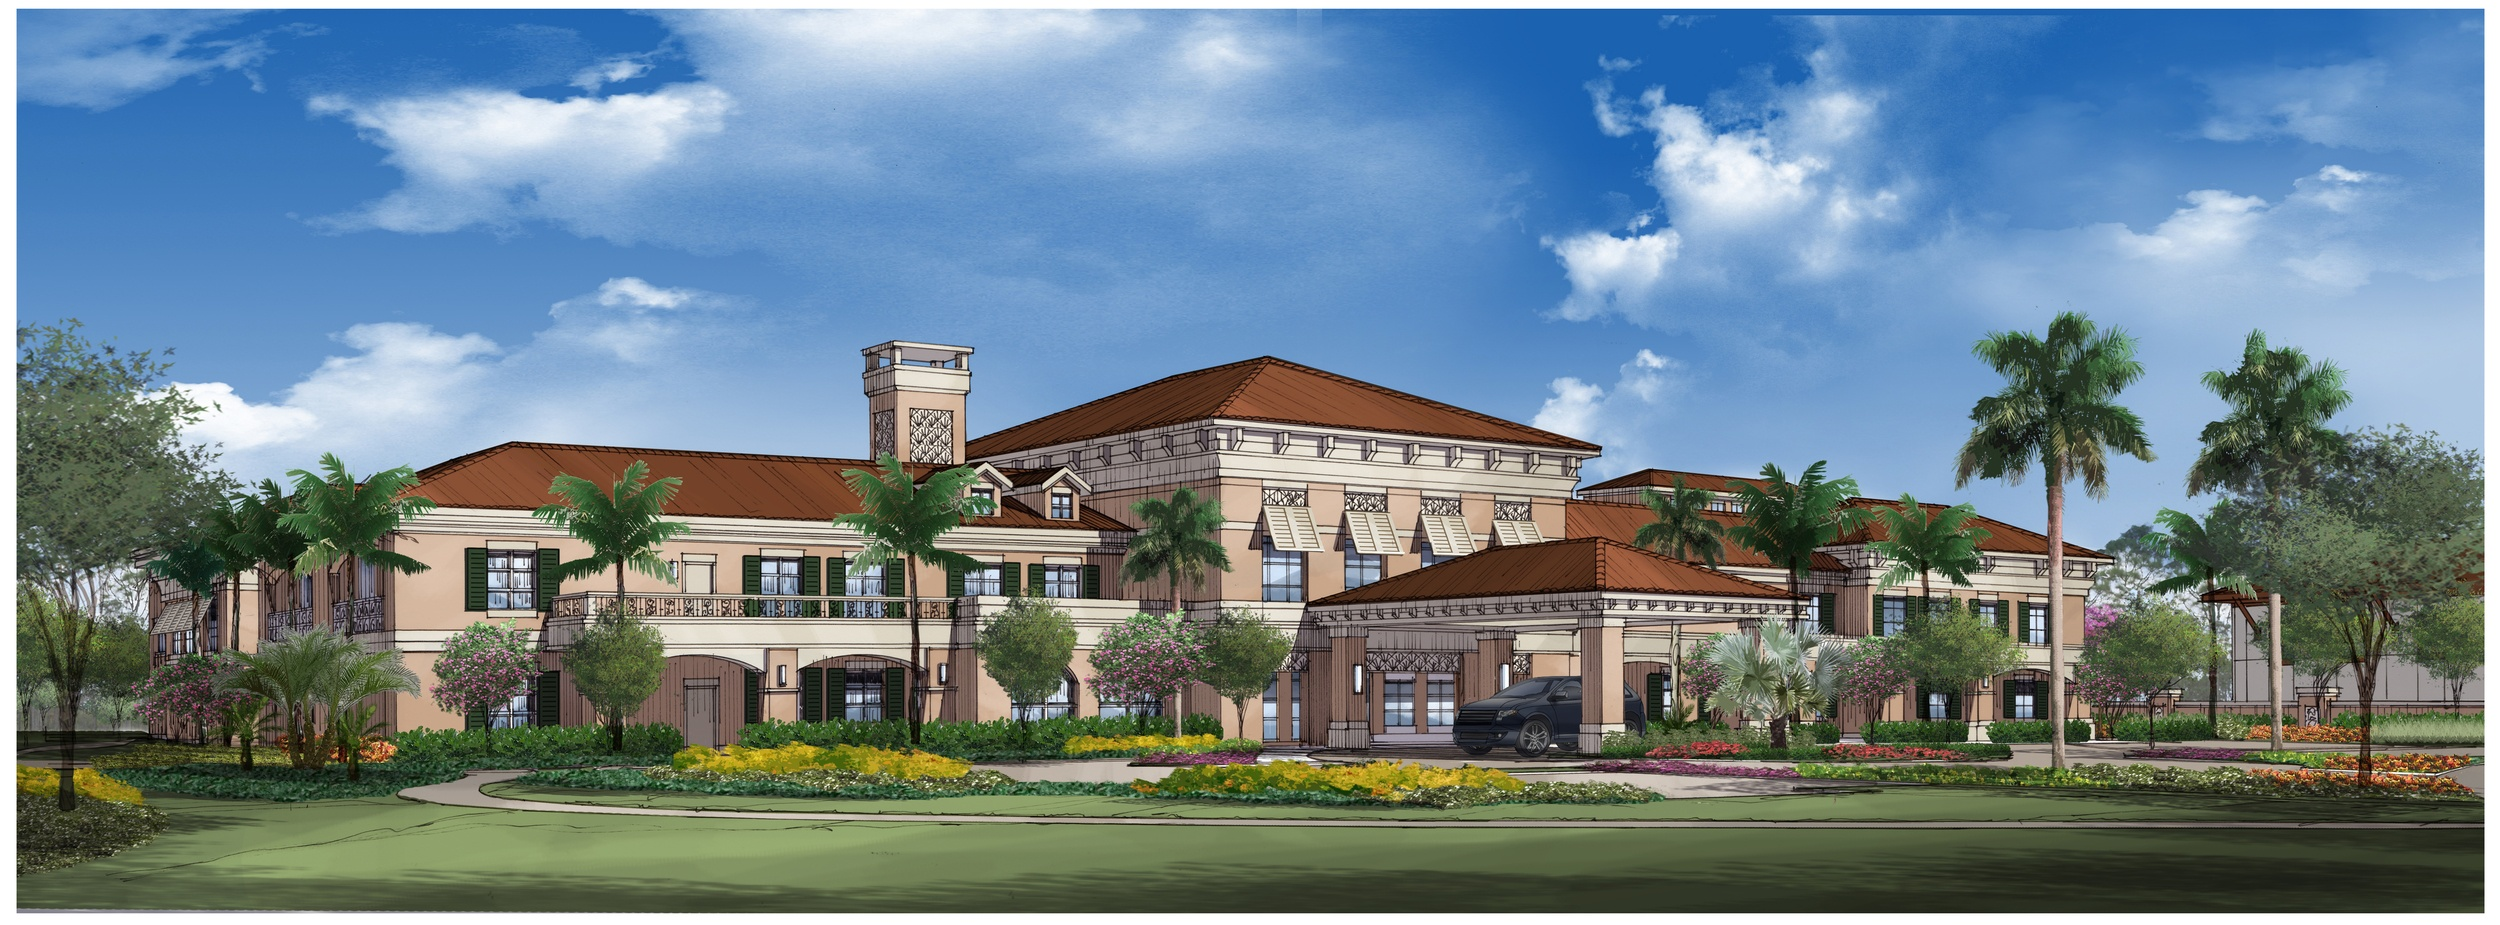 click here to view artist rendering - Palm Gardens Nursing Home Florida